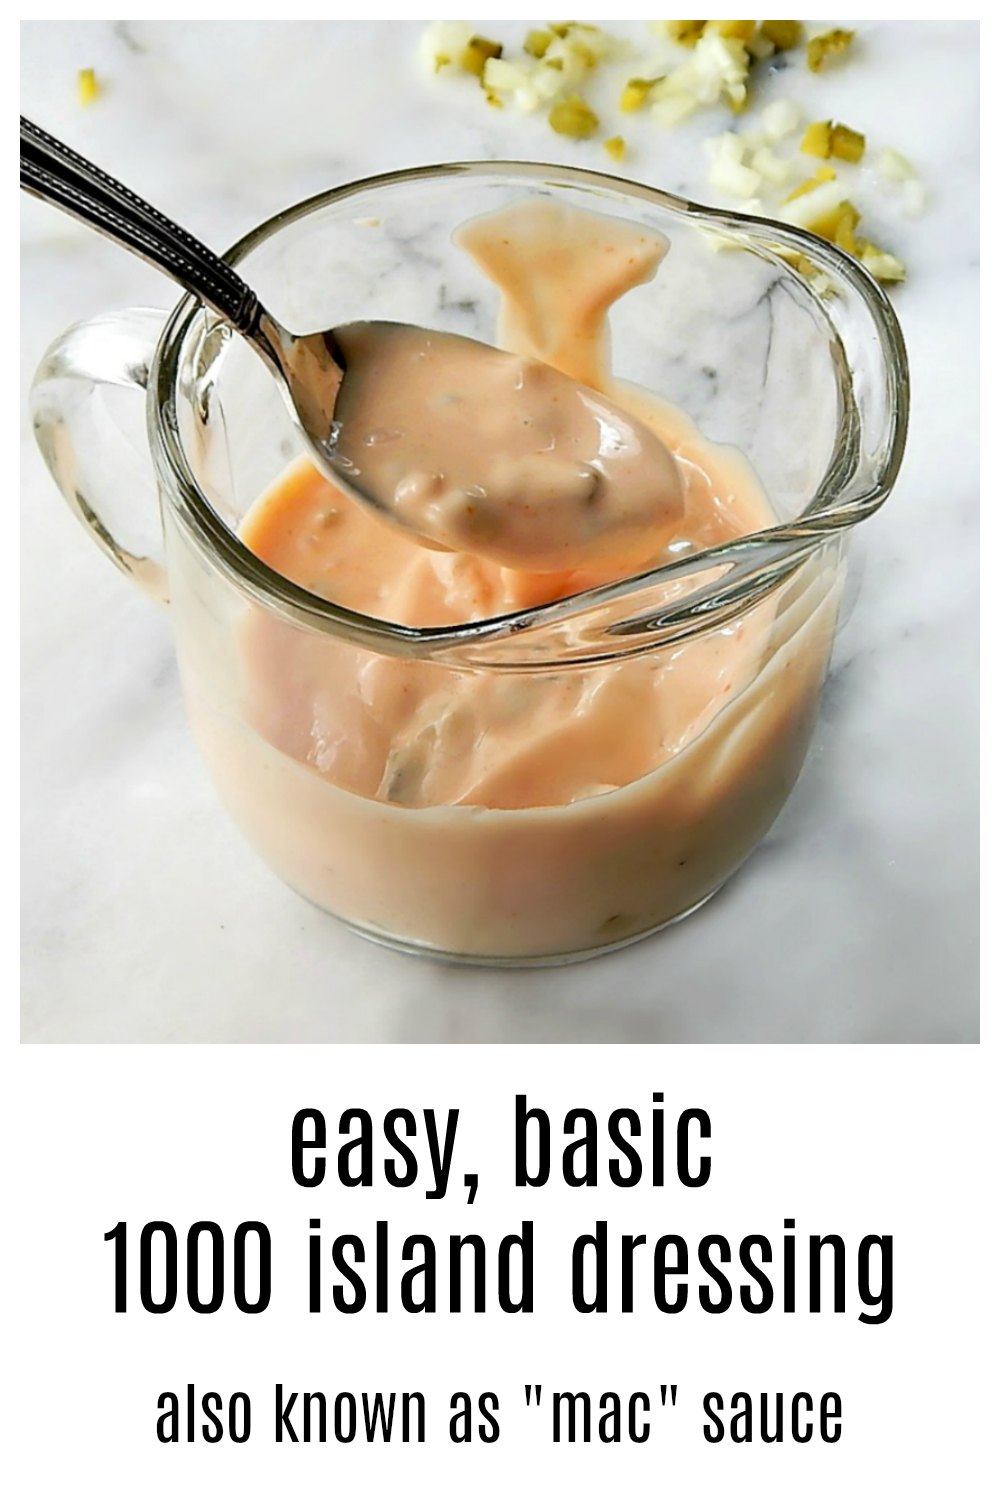 "Thousand Island Dressing is making a comeback, due to McDonald's restaurants. It's morphed from a classic, but old-fashioned salad dressing to the ""special sauce"" on a Big Mac into all-purpose dipping sauce, popular with the younger generations. Here's how to make the real stuff! #MacSauce #HomemadeMacSauce #ThousandIslandDressing #Homemade1000Island #Homemade1000Island #1000Island #HomemadeSaladDressings #ReubenSandwiches"